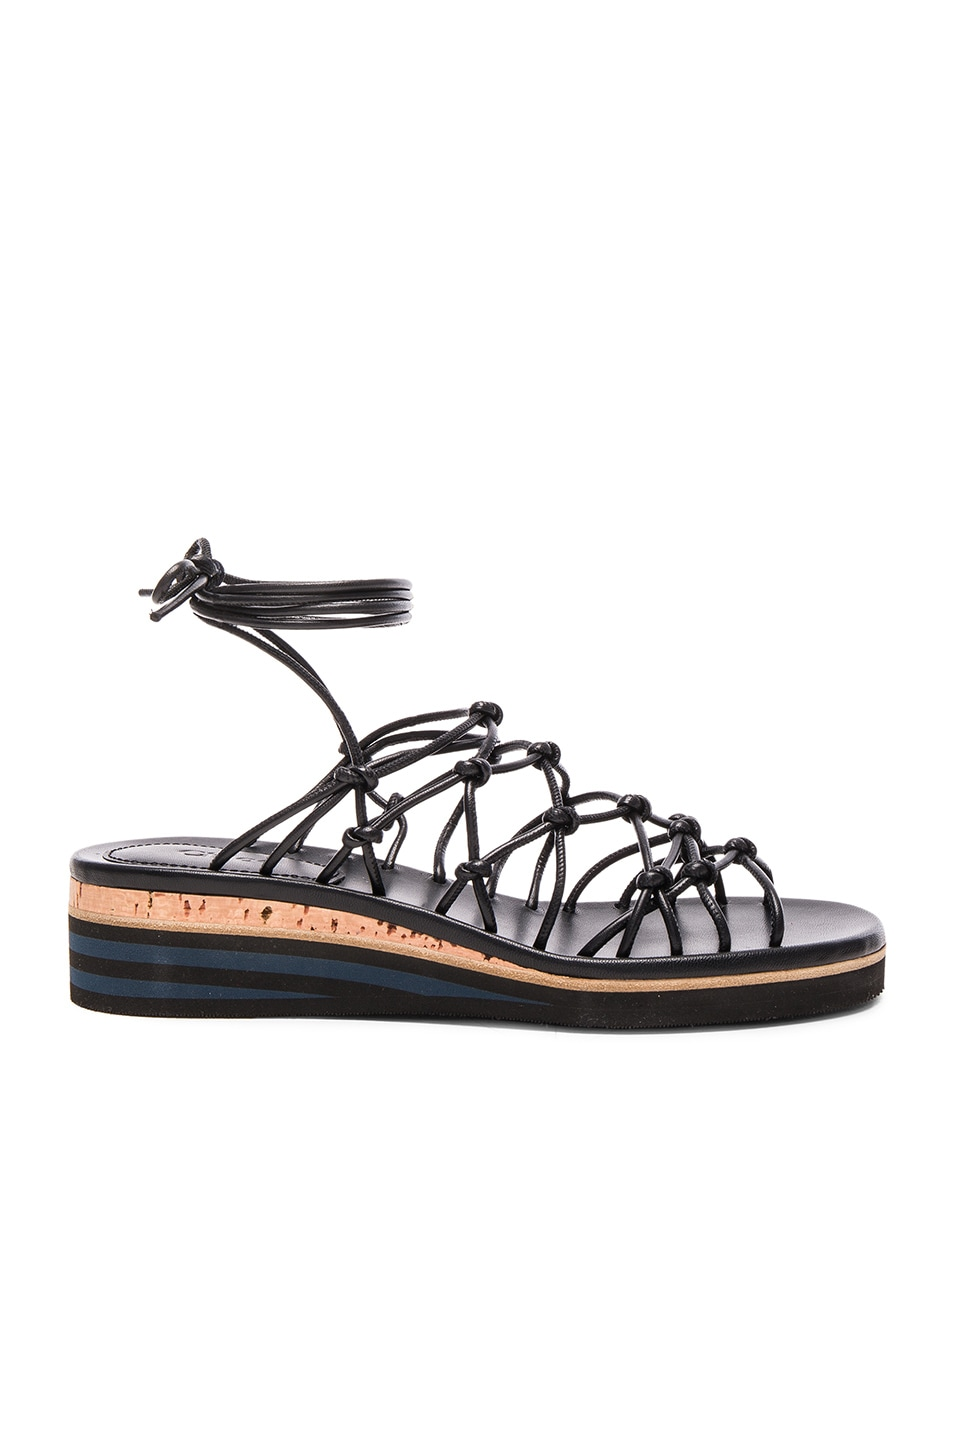 Image 1 of Chloe Leather Net Sandals in Black